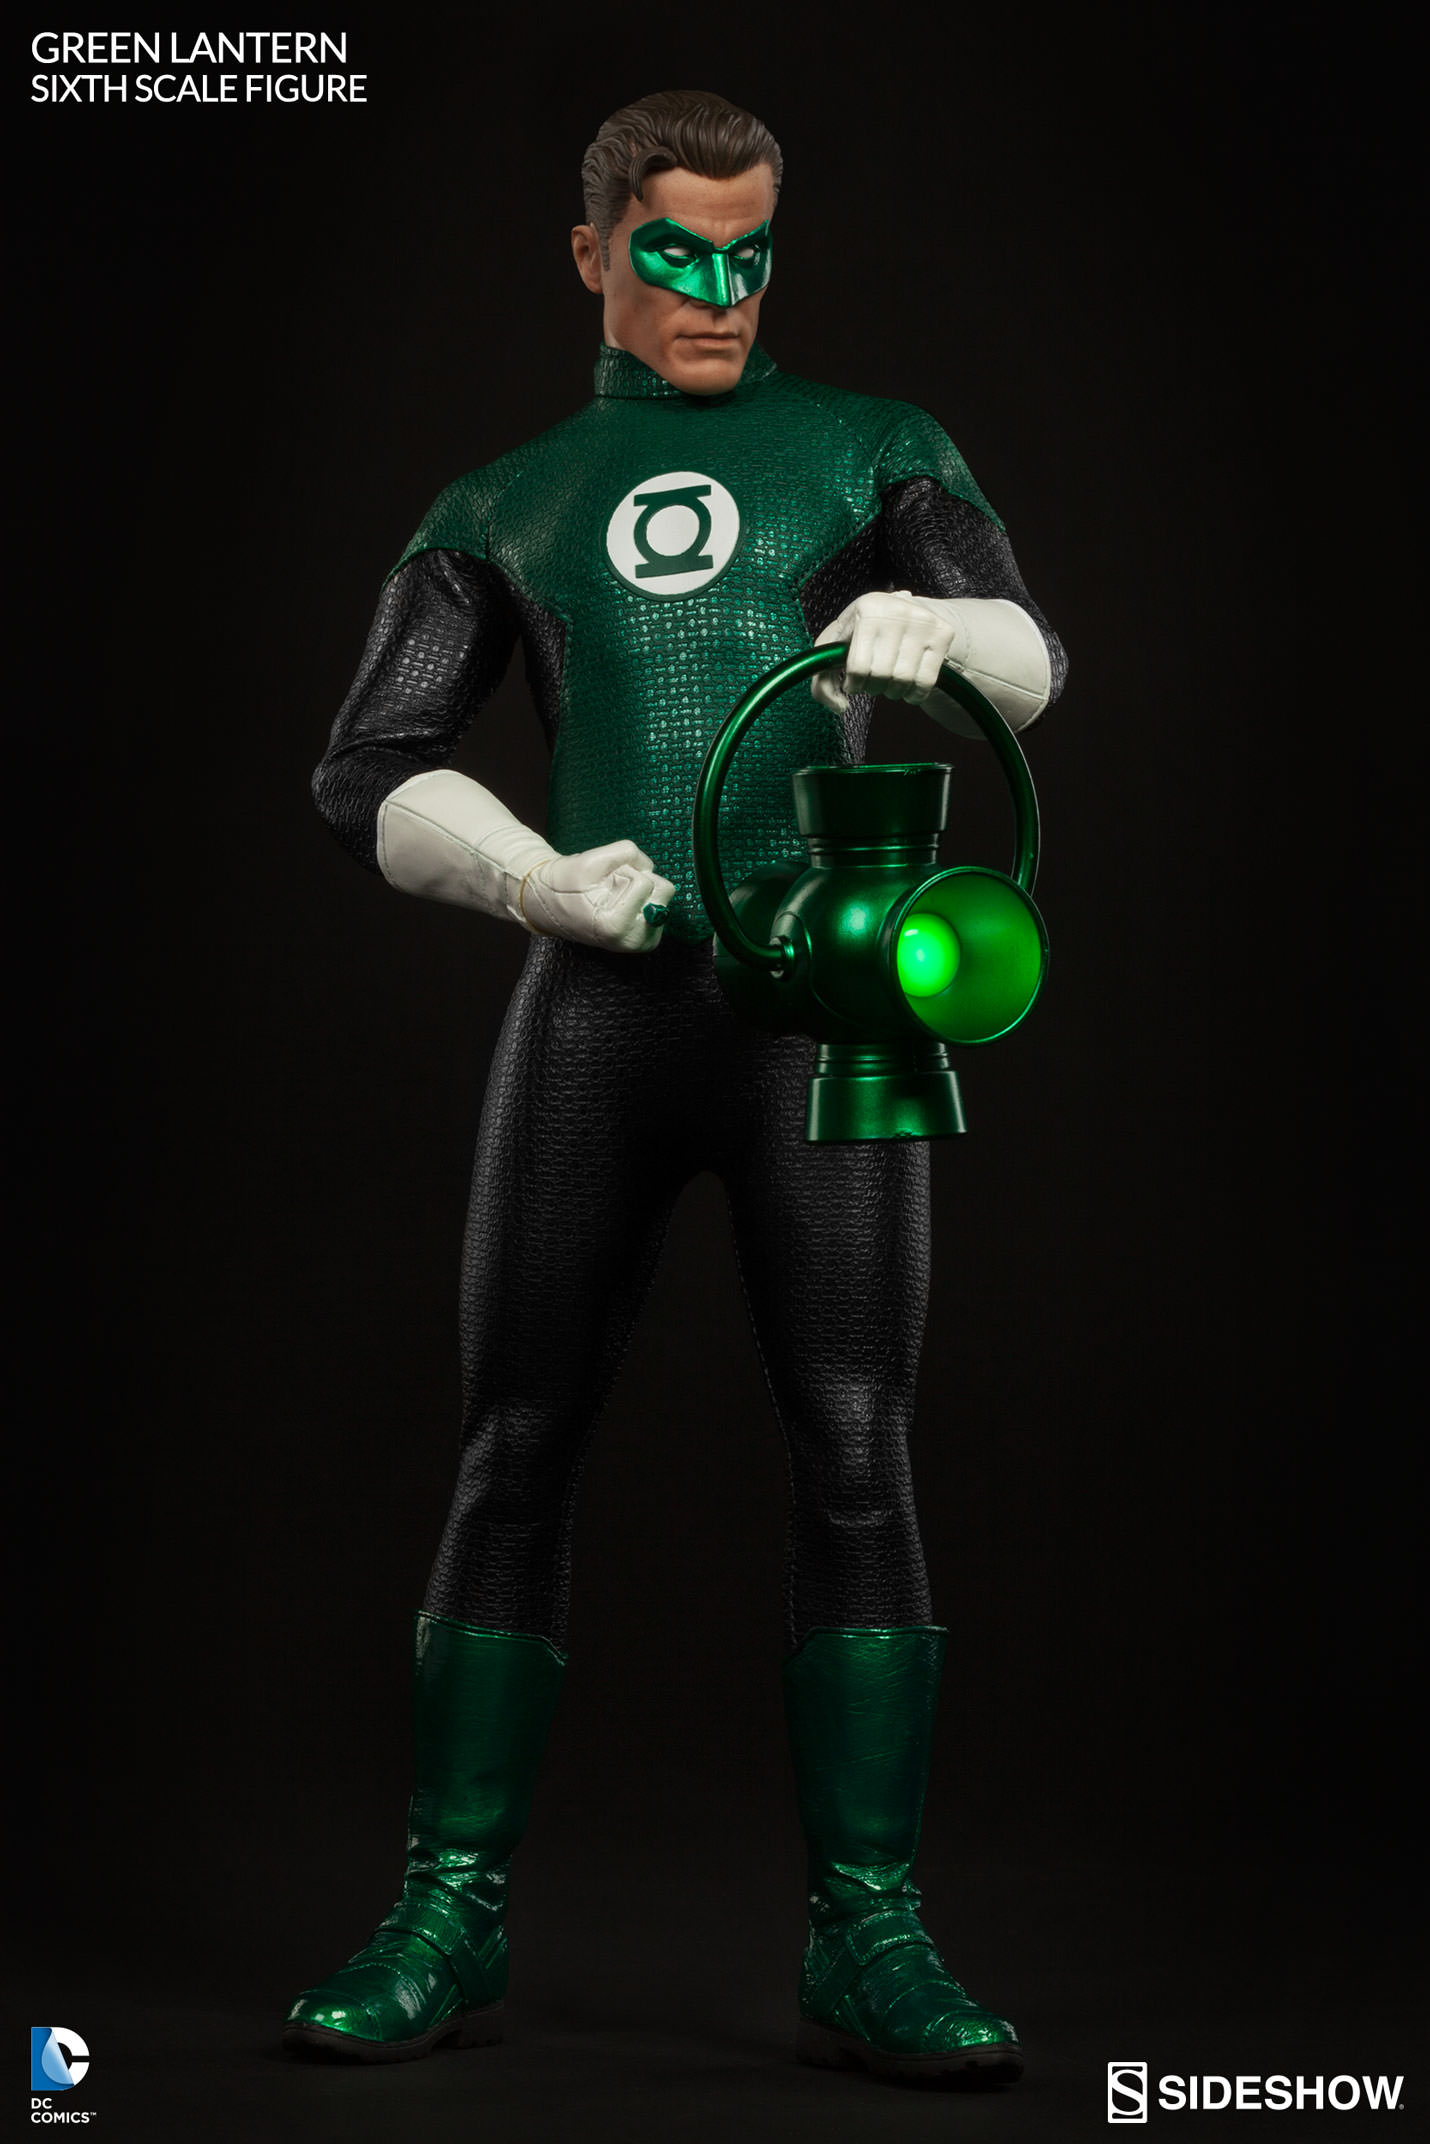 The Green Woman The Empress From The Wildwood Tarot: DC Comics Green Lantern Sixth Scale Figure By Sideshow